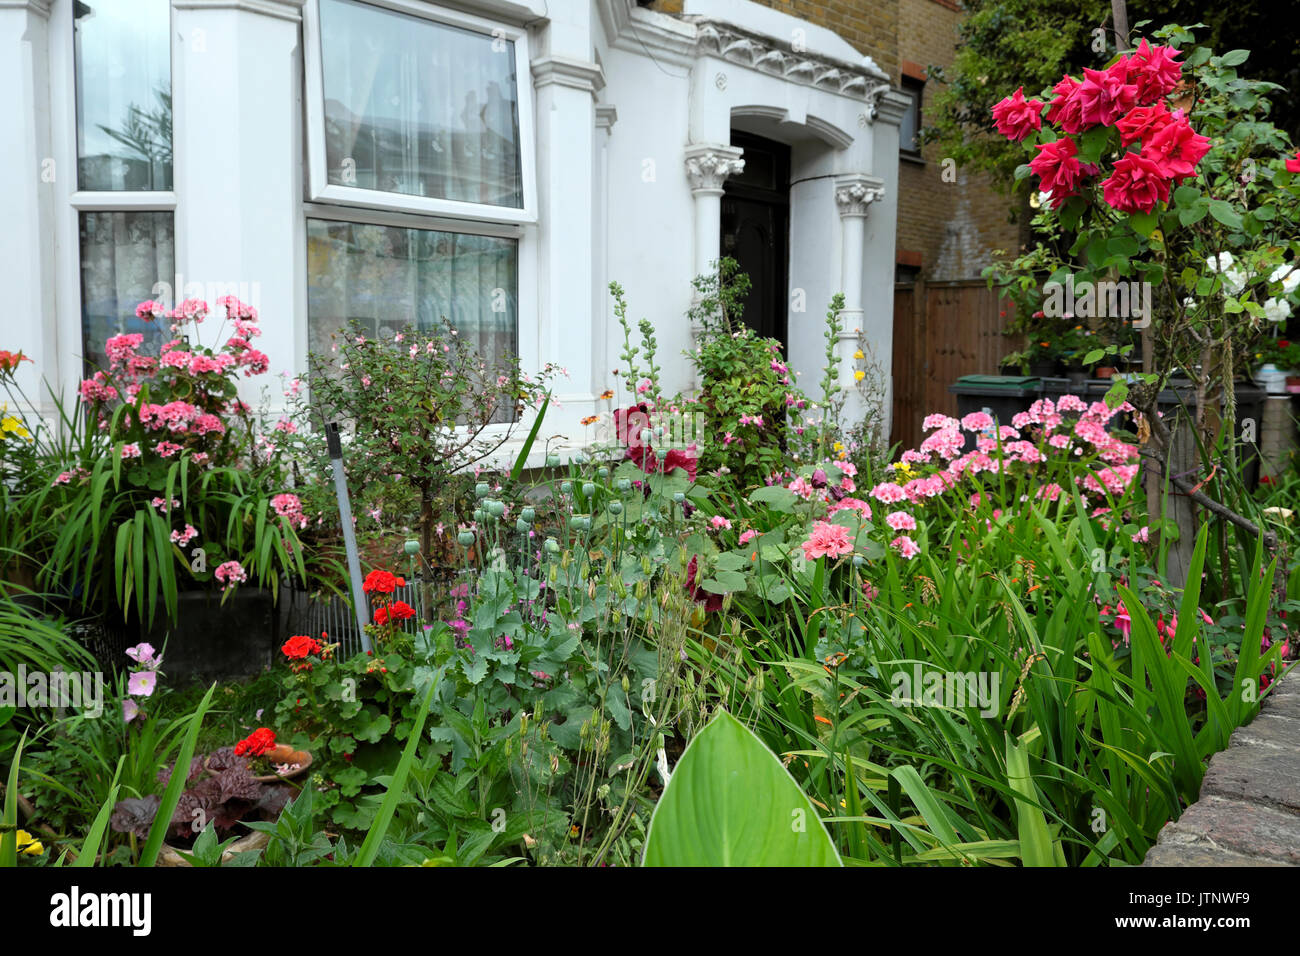 A beautiful flower garden roses, geraniums, hollyhocks in bloom in front of a house in West Green Road, Seven Sisters, North London N 15 - Stock Image